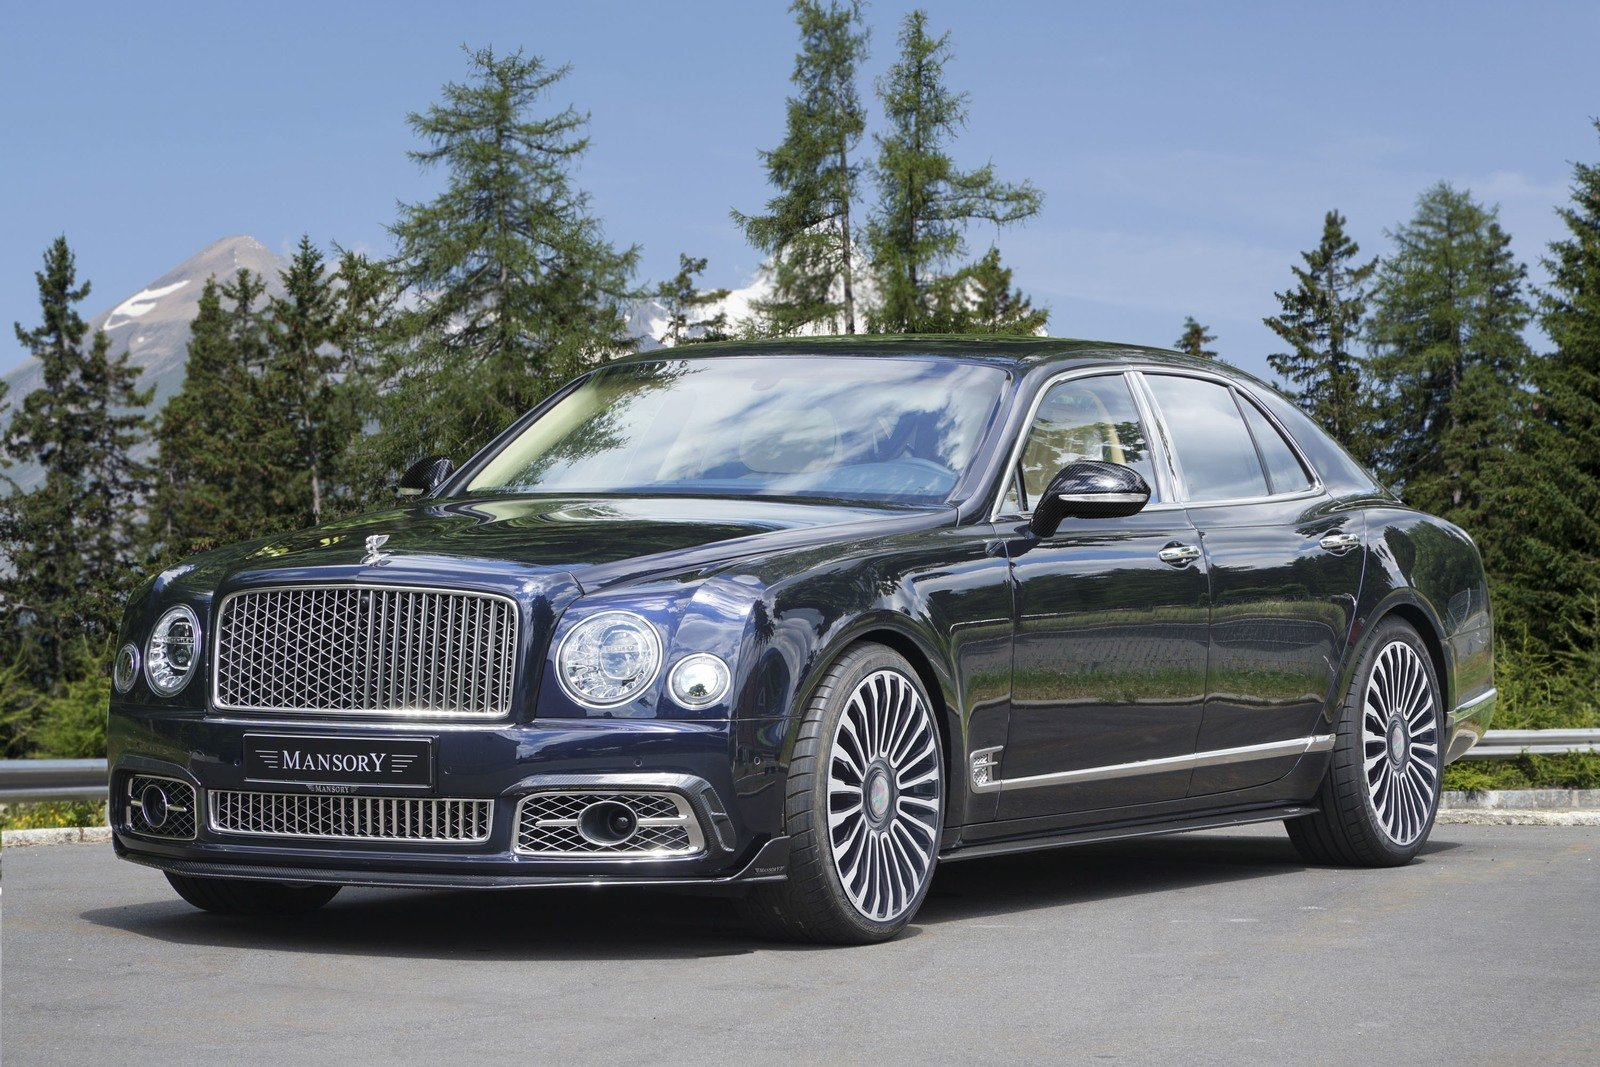 Top 5 Facts About The 2017 Bentley Mulsanne By Mansory